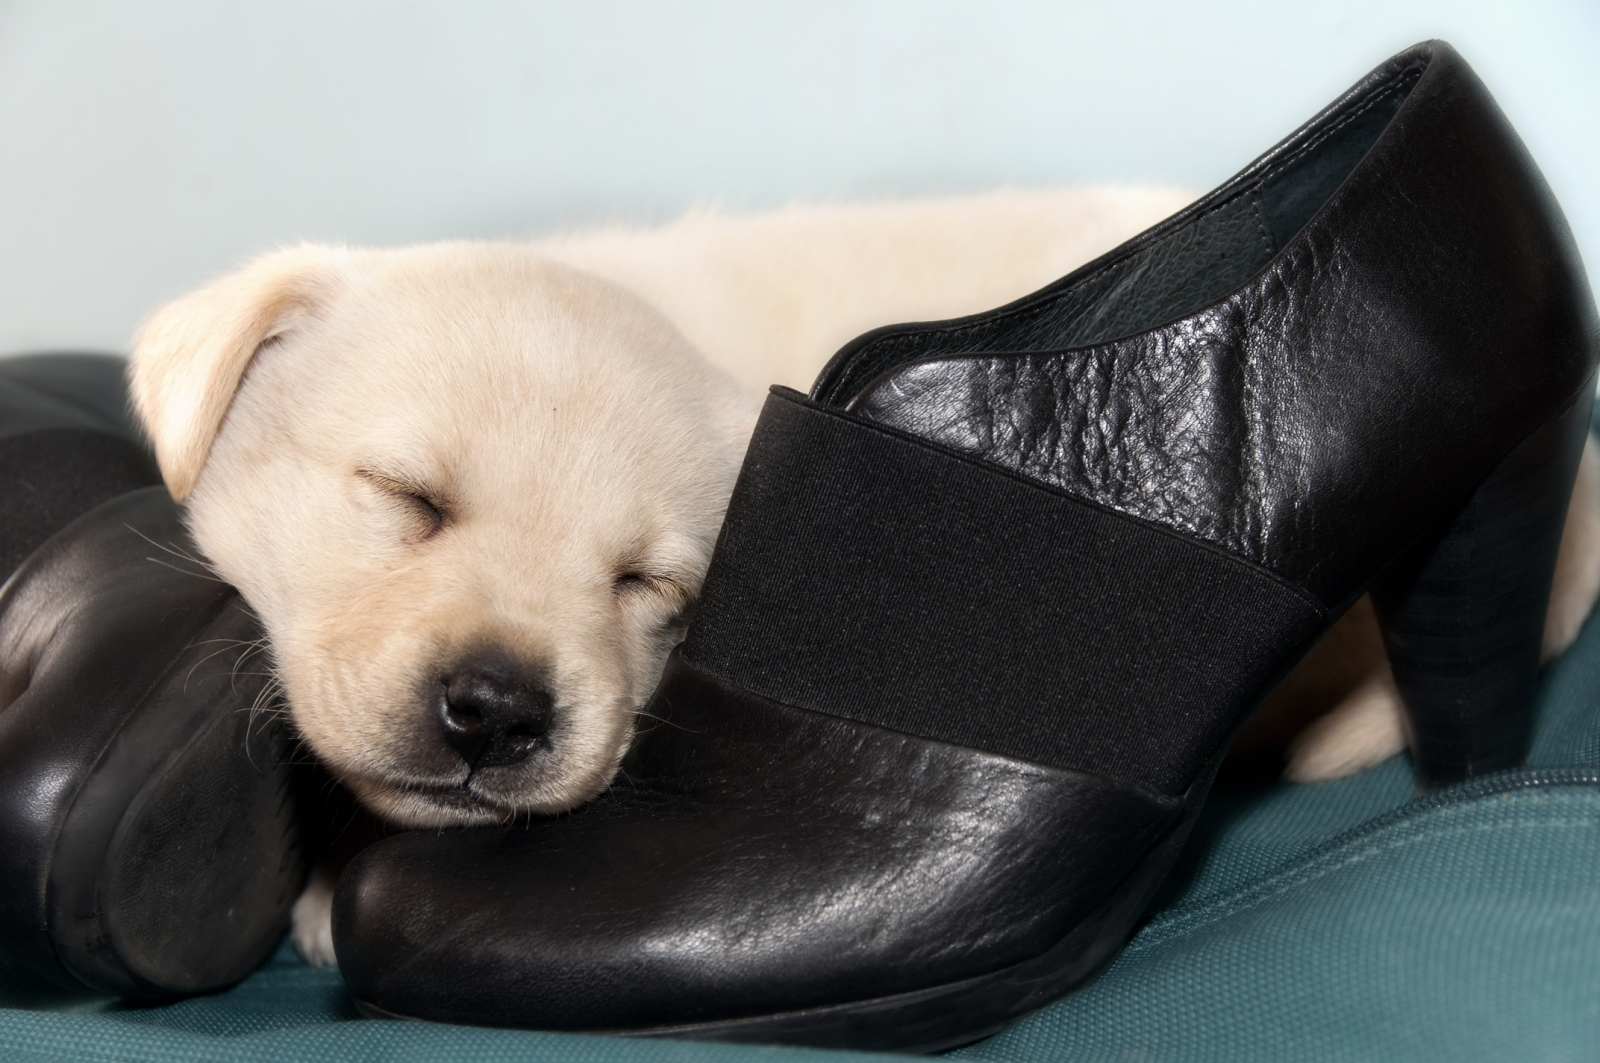 A labrador puppy on top of some heels. Photo by Alessandro dyd/Fotolia.